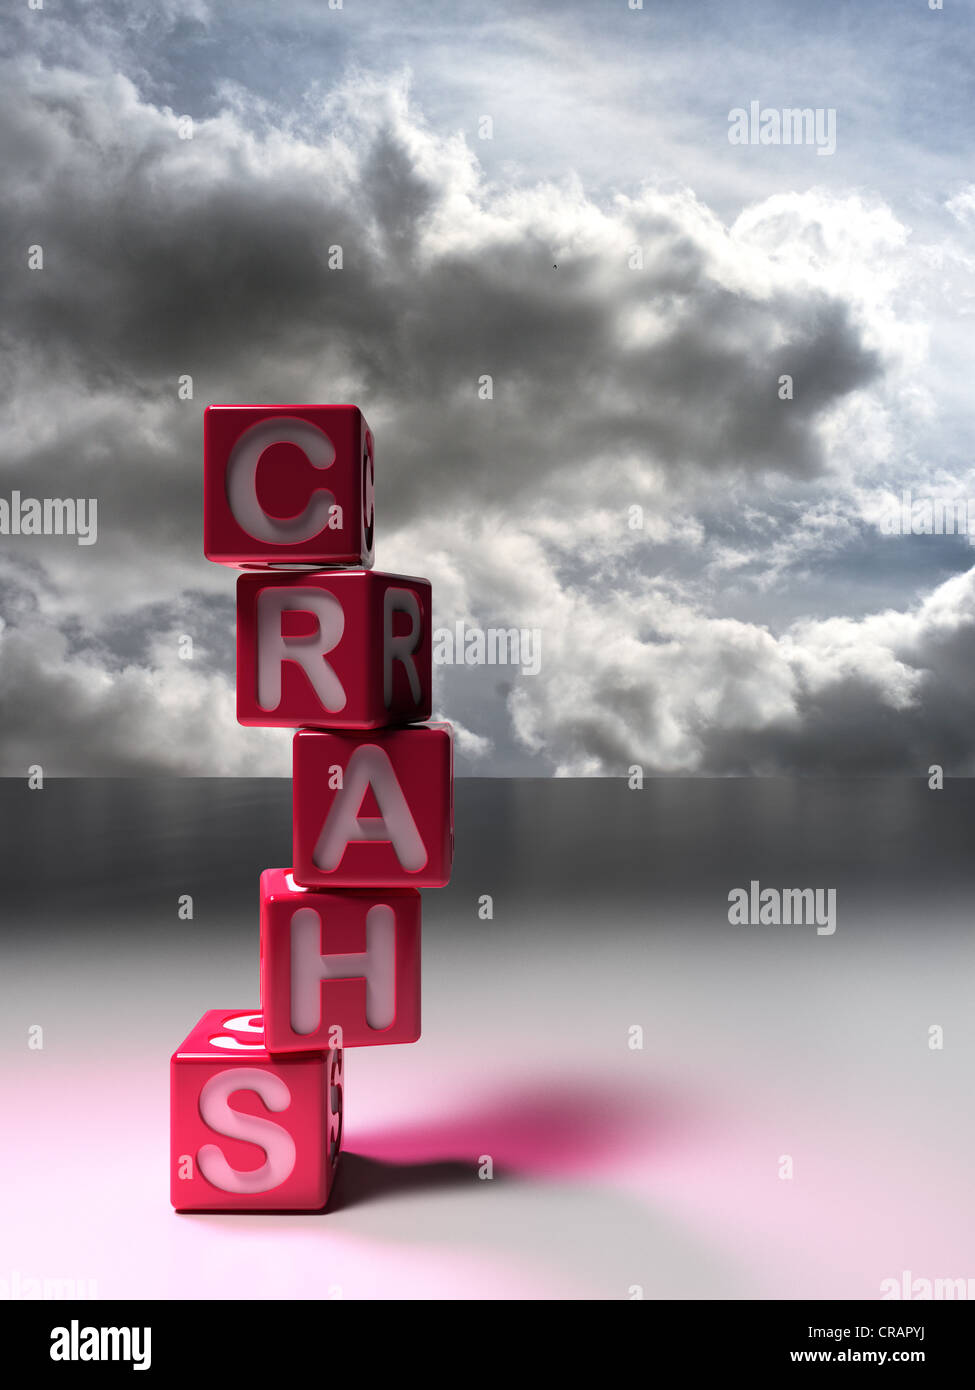 Five dice stacked, forming the word 'Crash', thunderstorm clouds - Stock Image